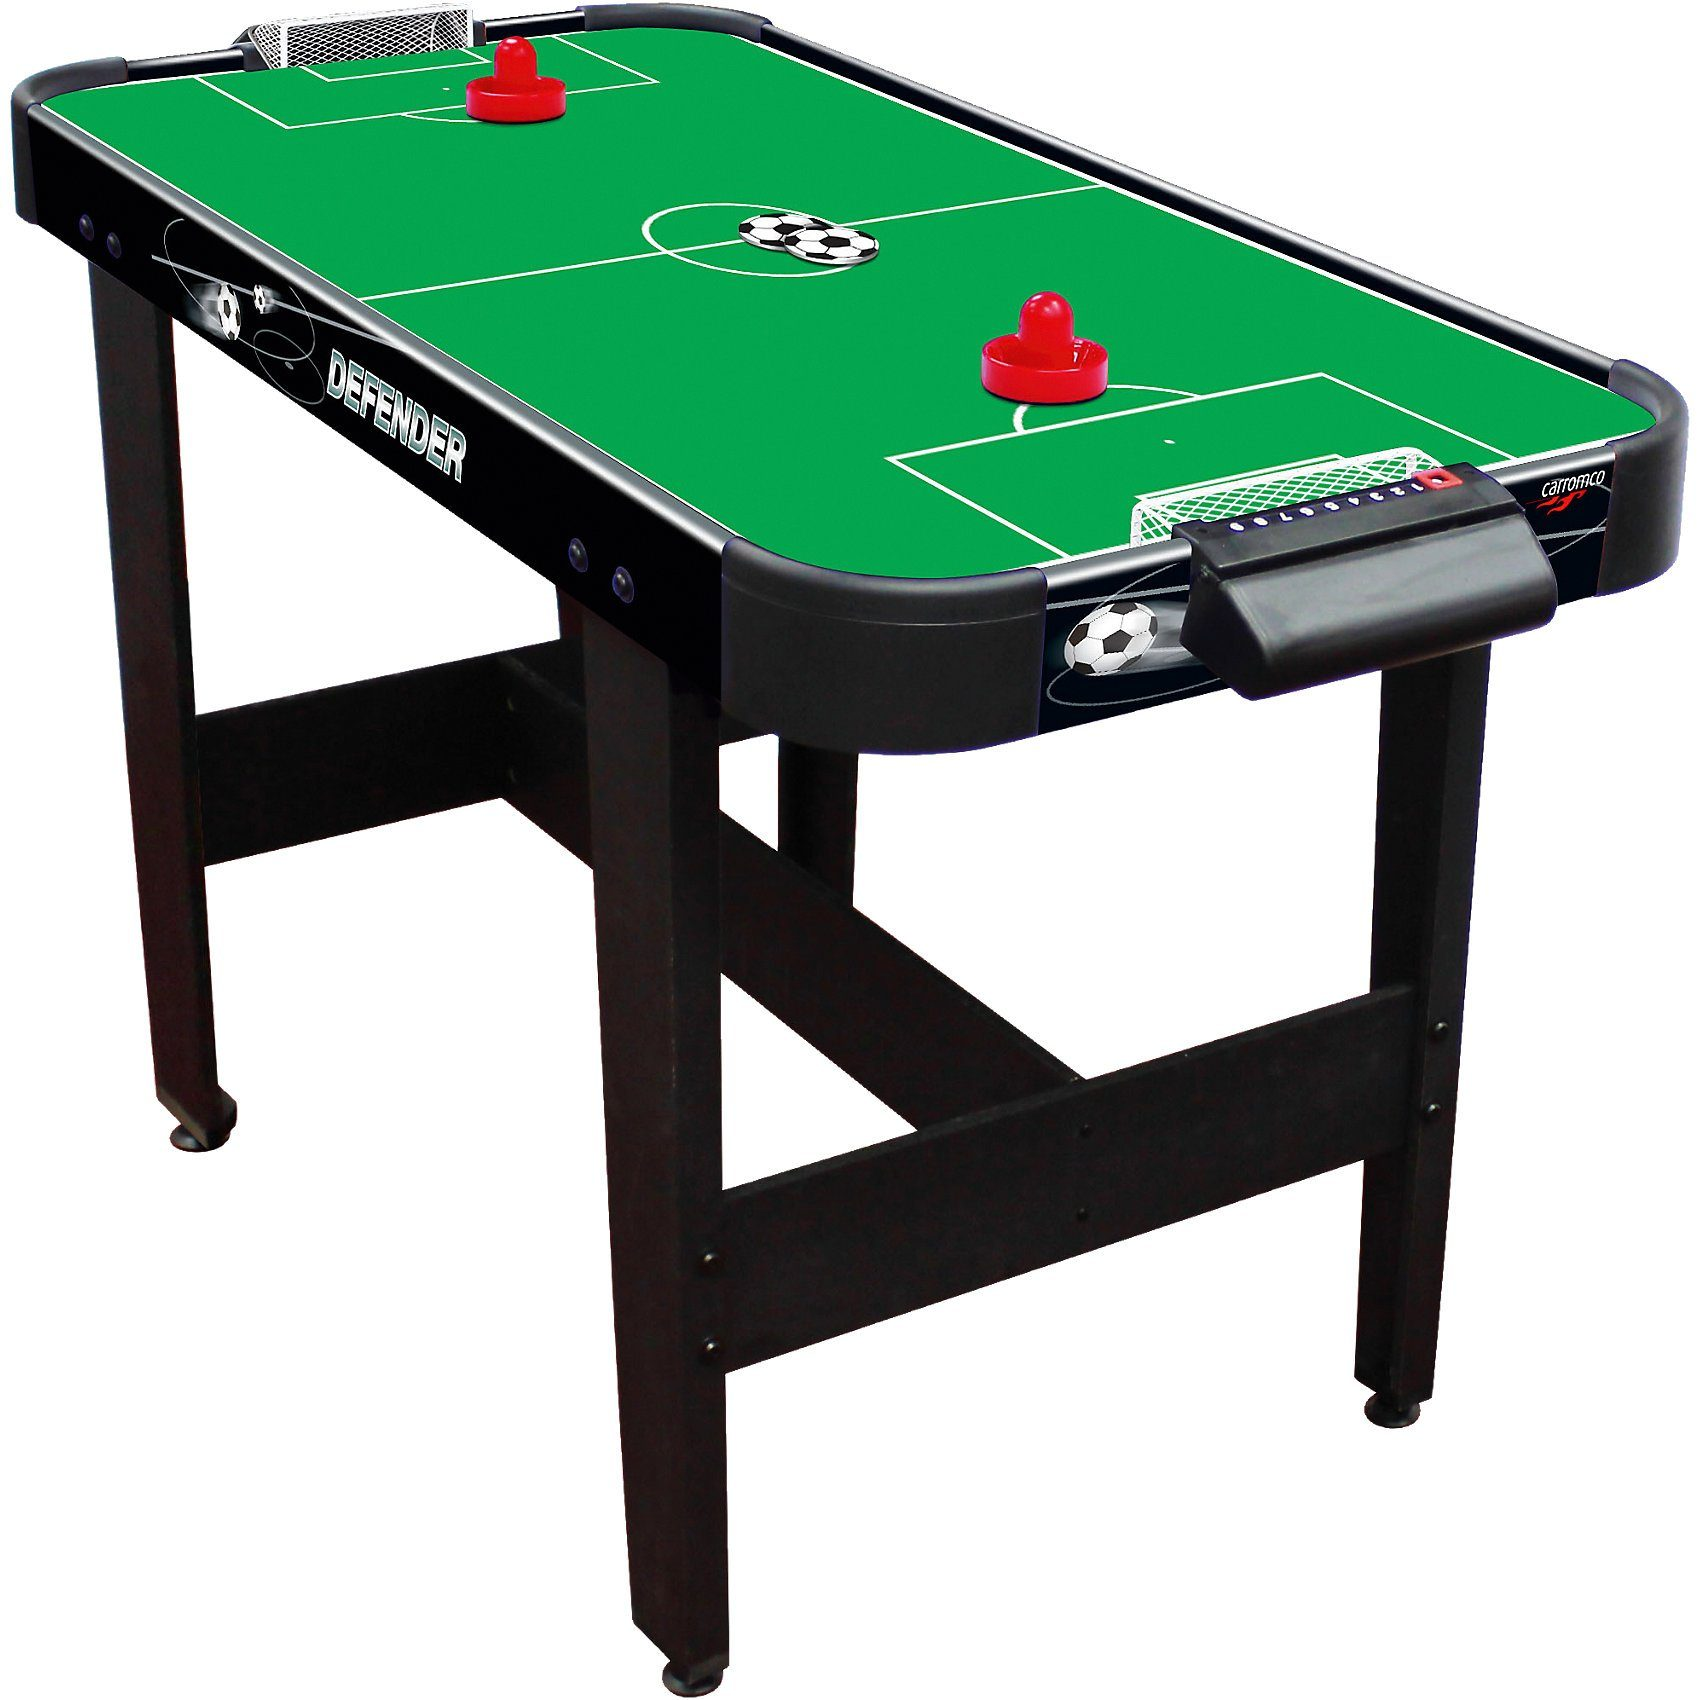 Carromco Airhockey Defender-XT